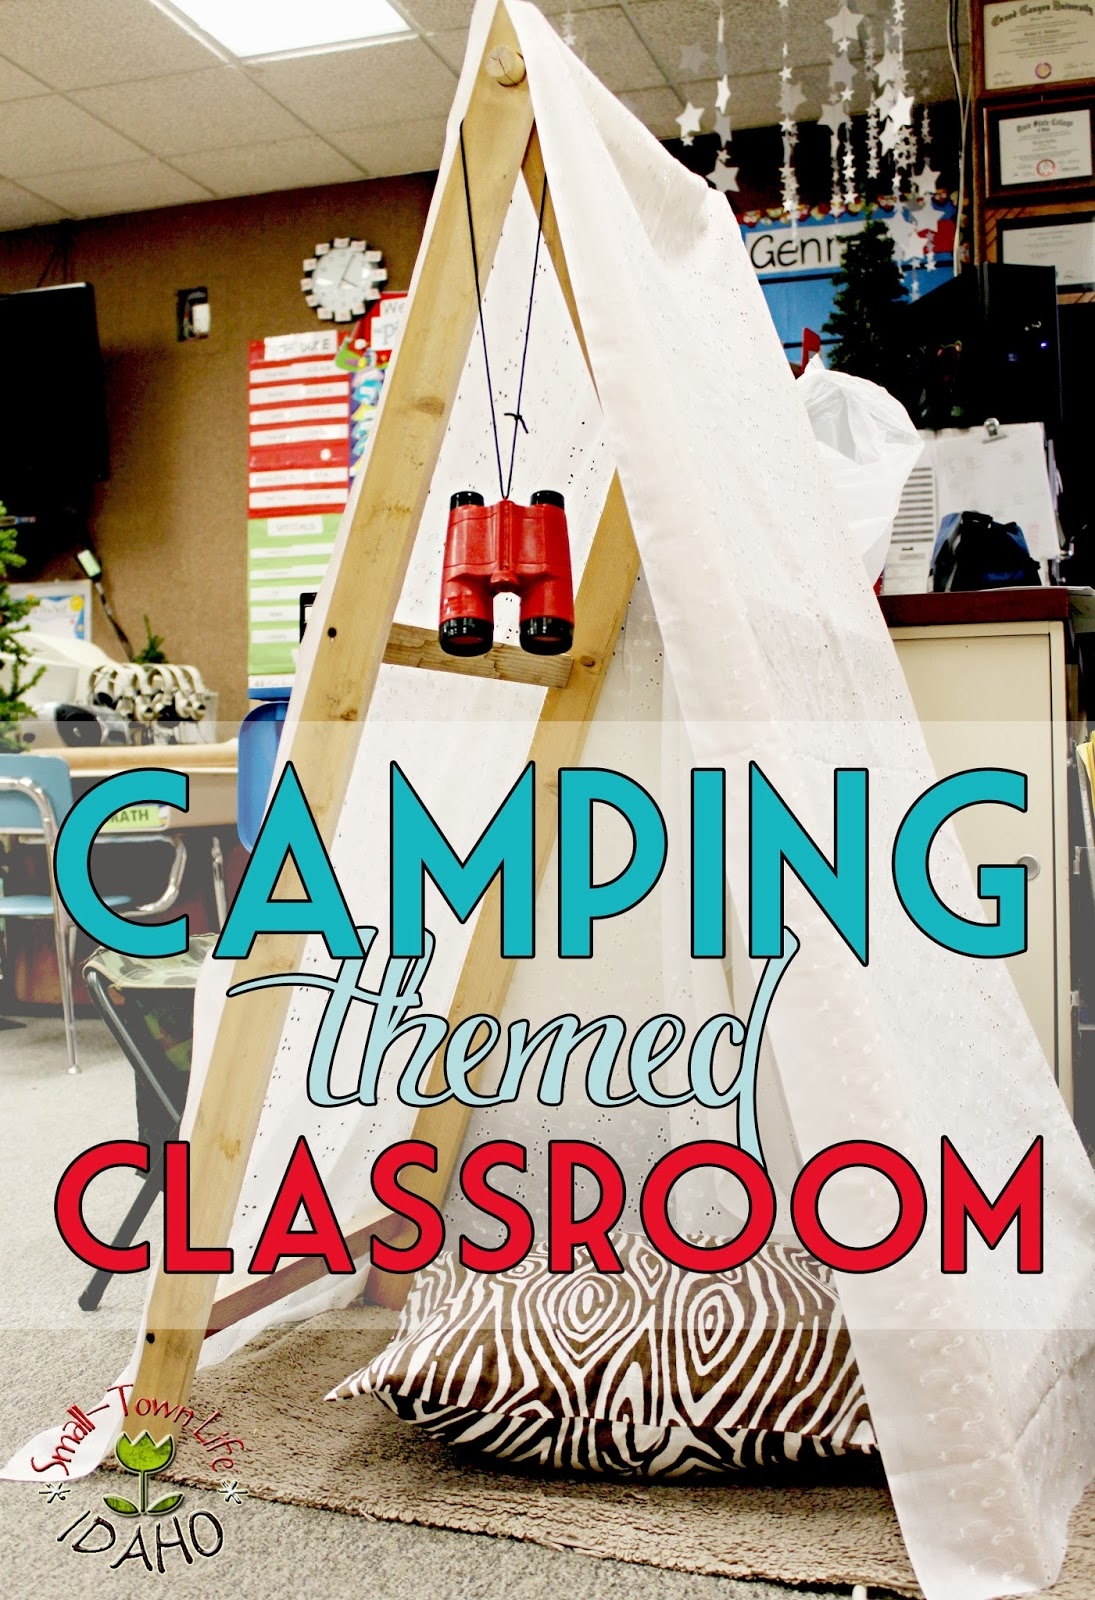 Camping Themed Classroom Decorations ~ Our small town idaho life camping themed classroom